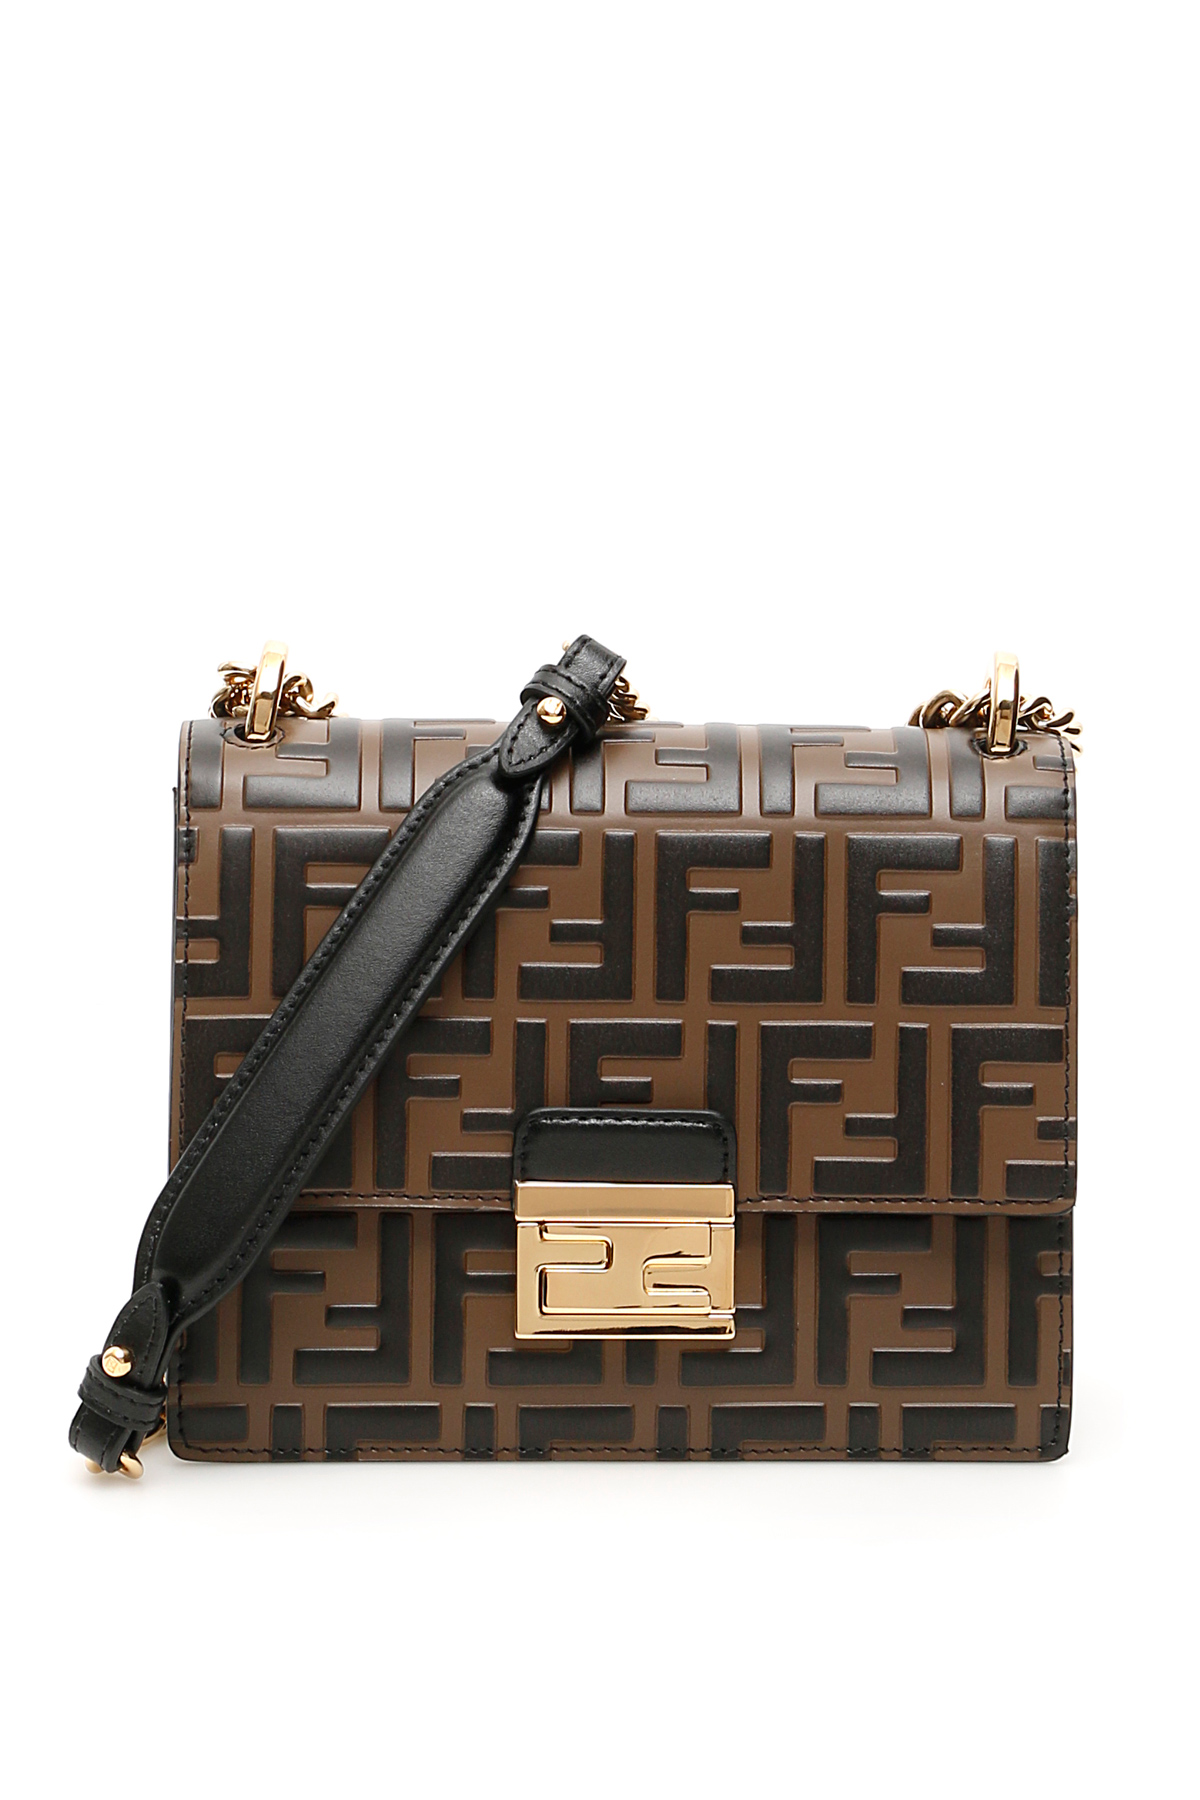 FENDI SMALL FF KAN U BAG OS Brown, Black Leather